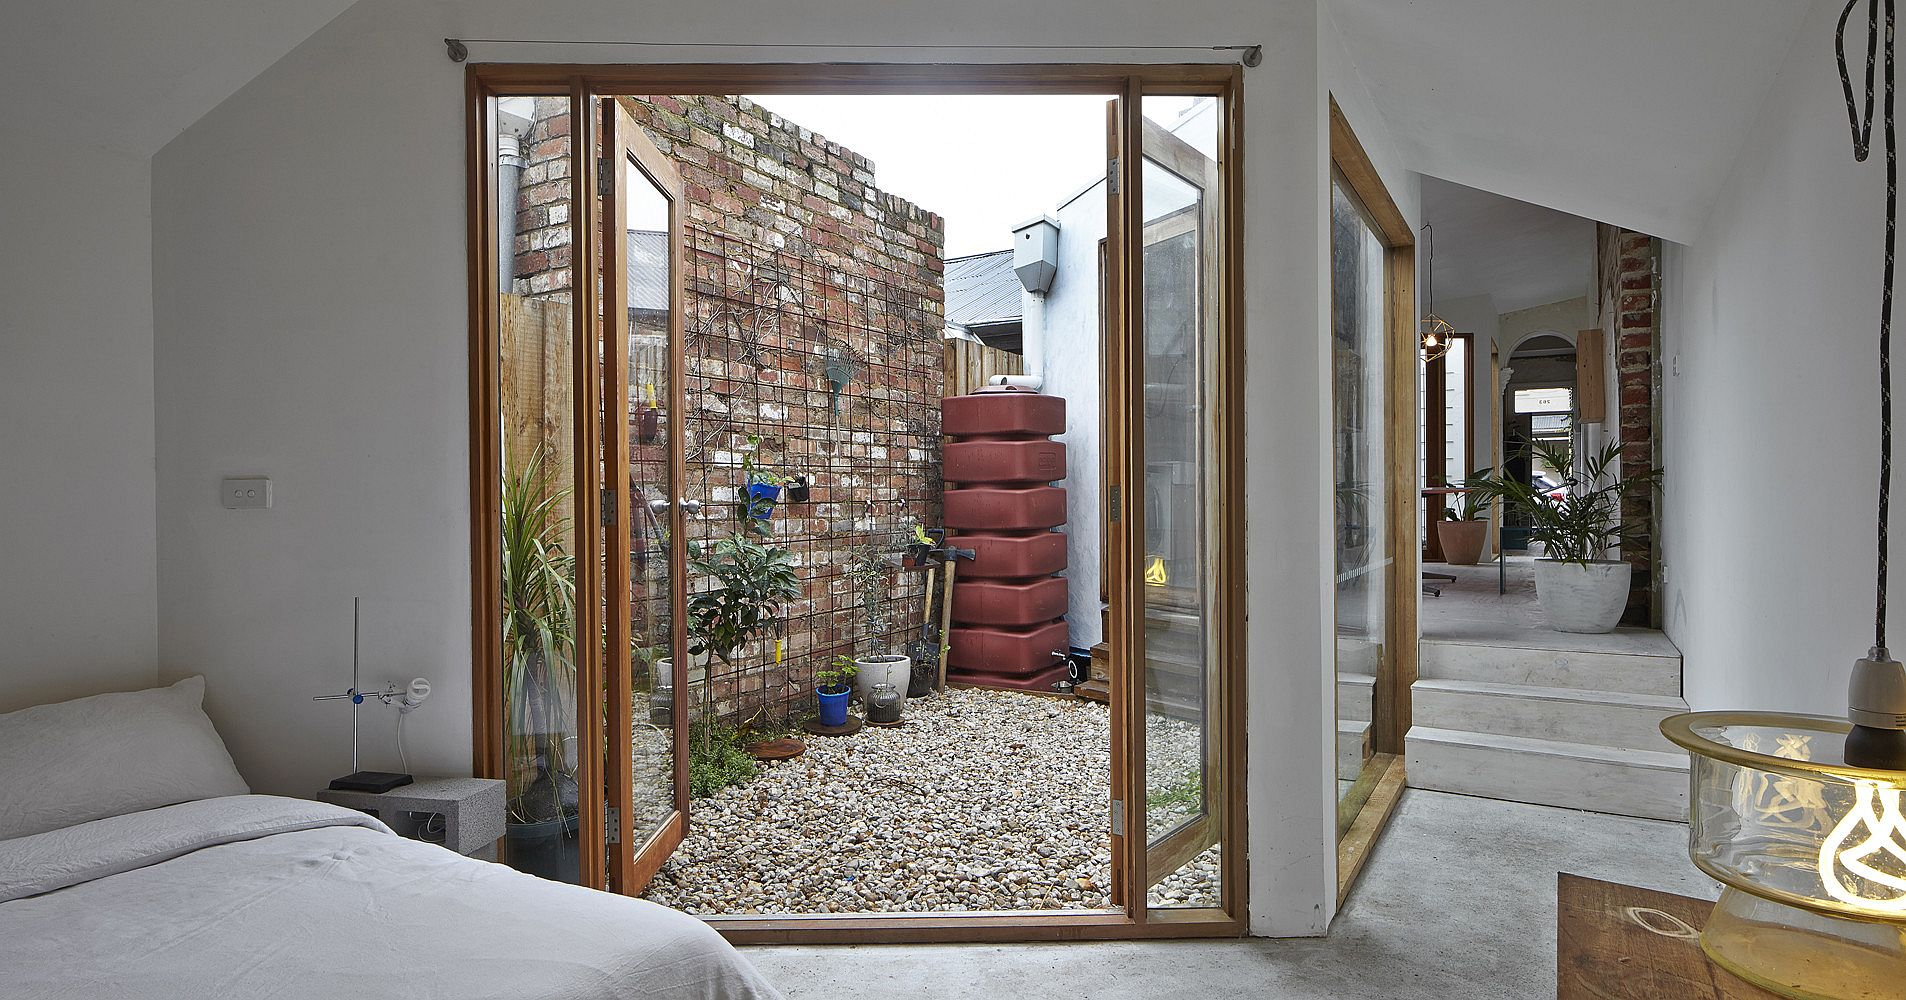 Glass-doors-with-wooden-frame-swing-open-to-connect-the-bedroom-with-the-small-courtyard-outside-81649